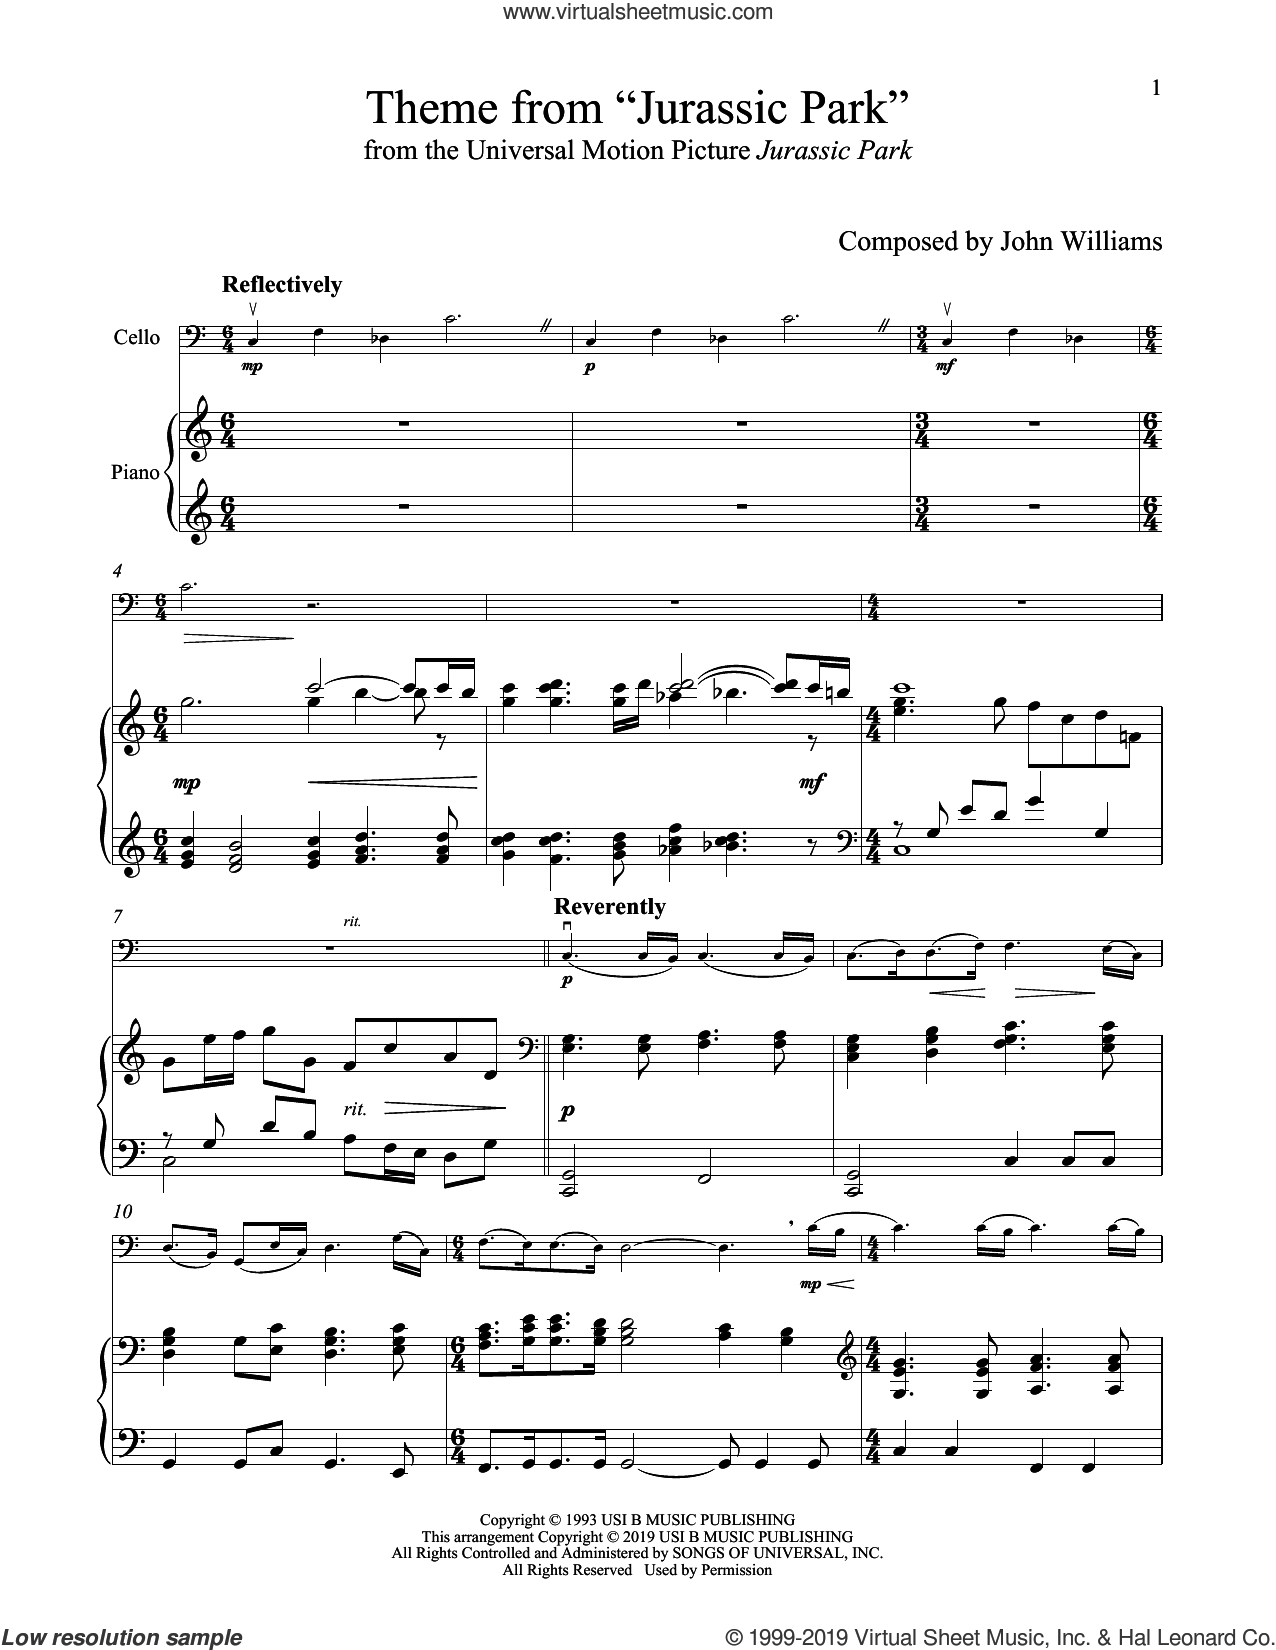 Theme From 'Jurassic Park' sheet music for cello and piano by John Williams, intermediate skill level